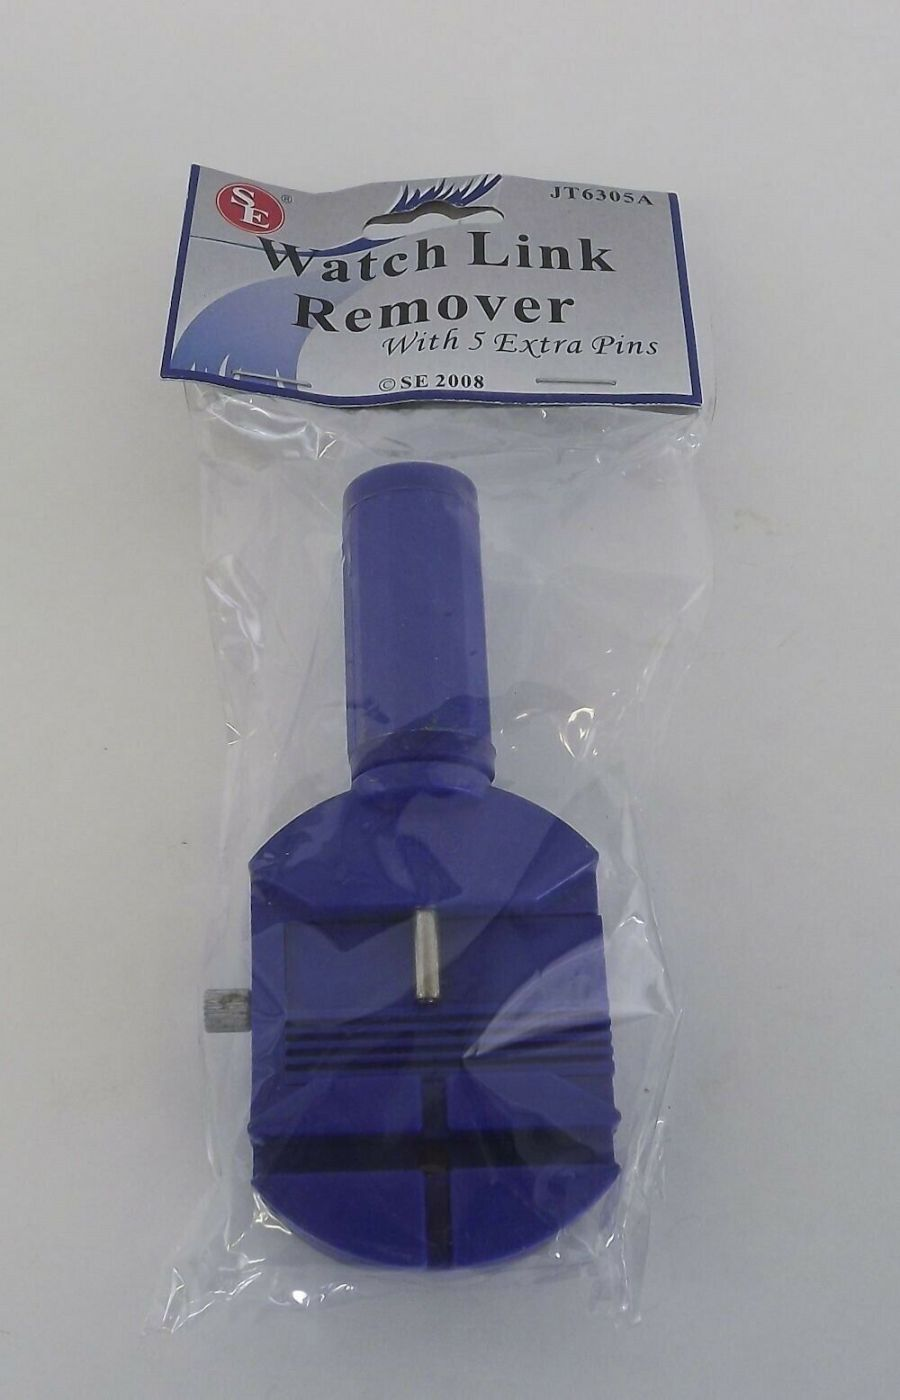 New Watch Repair Watch Link Remover With Extra Pins 1